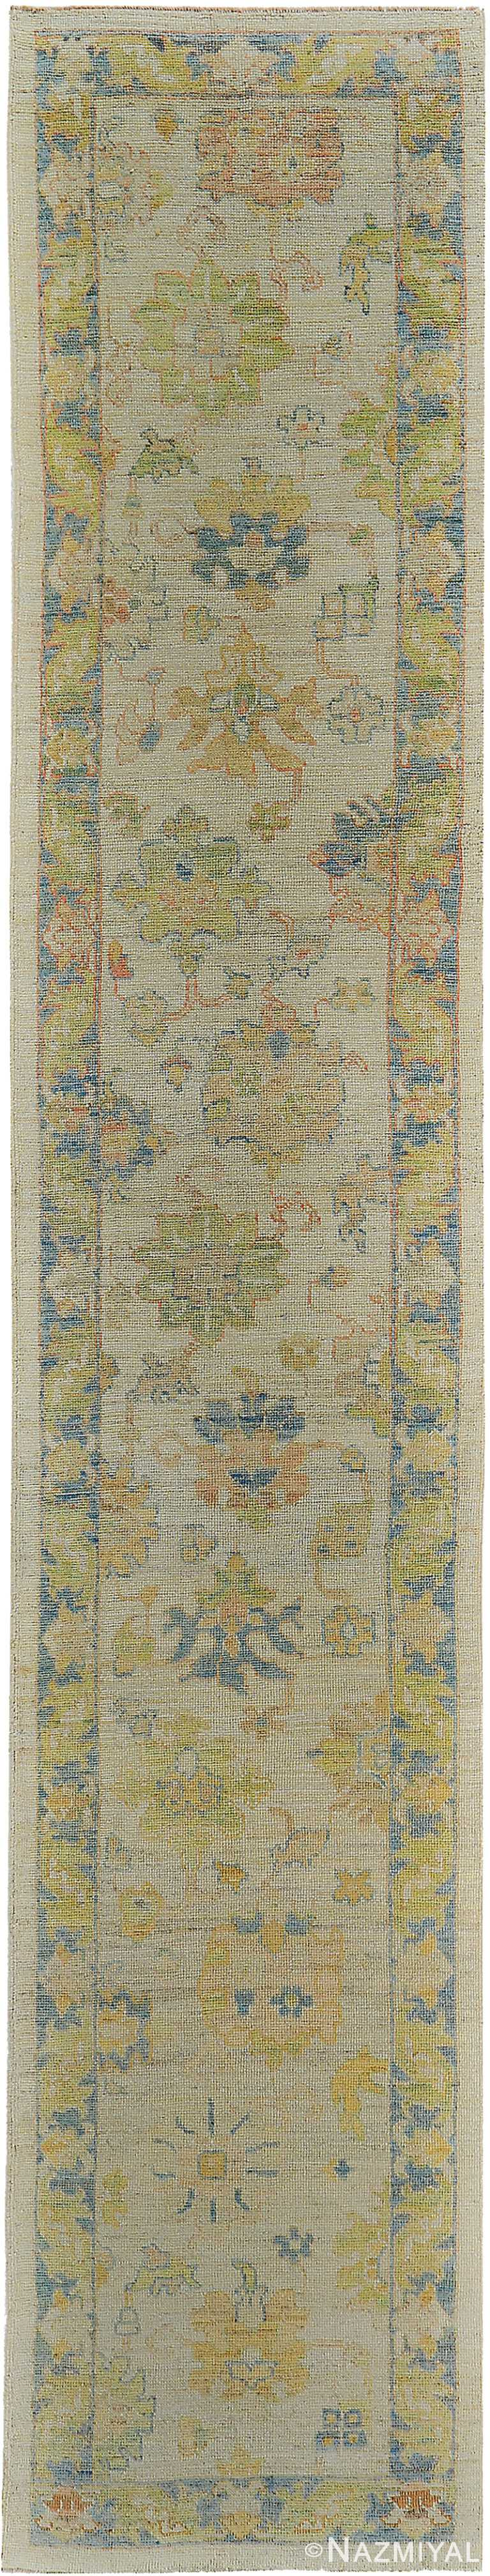 Green and Blue Modern Turkish Oushak Runner Rug 60402 by Nazmiyal NYC